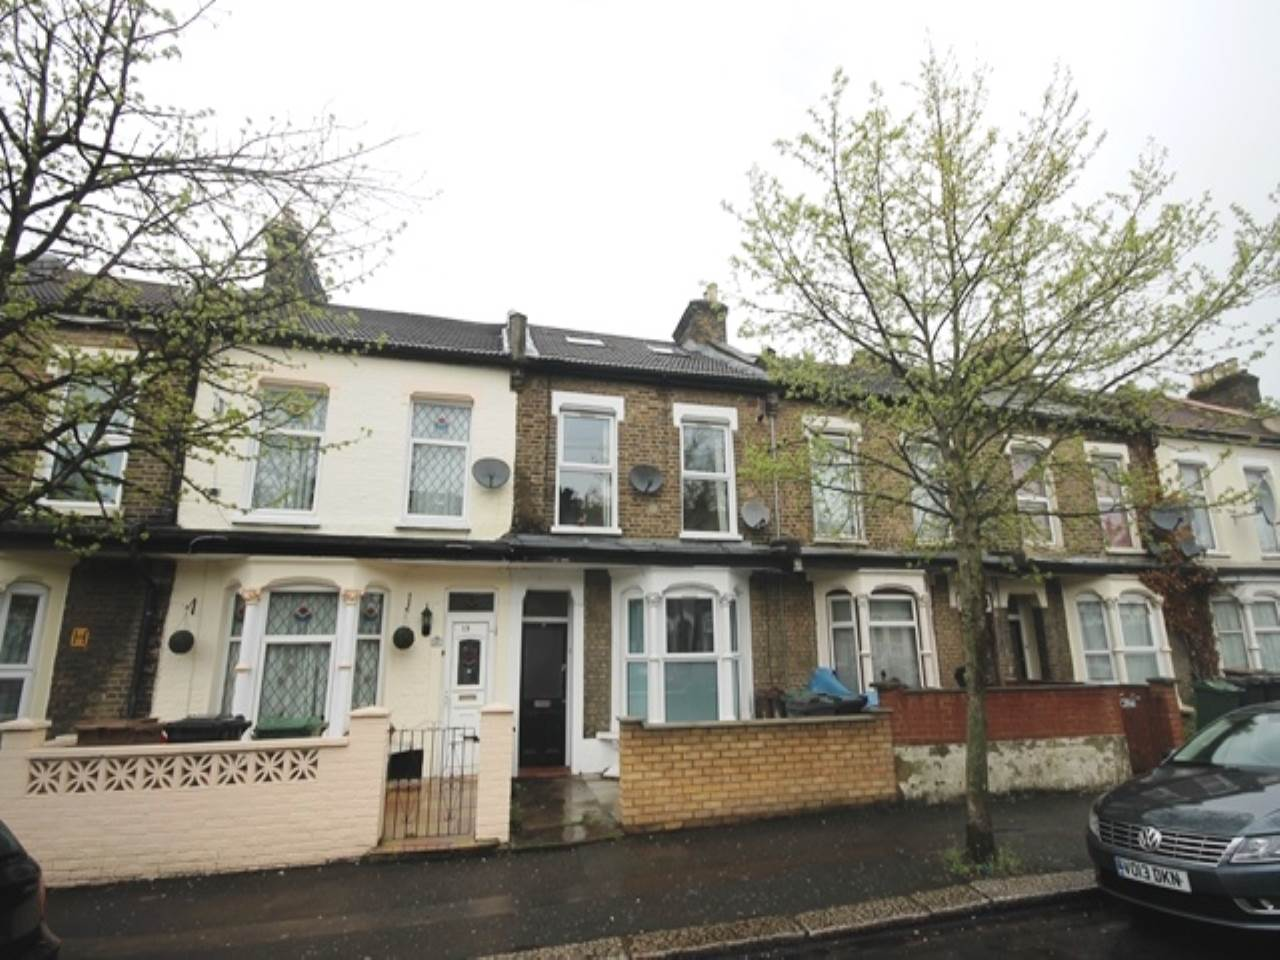 3 bed flat to rent in Leyton, E15